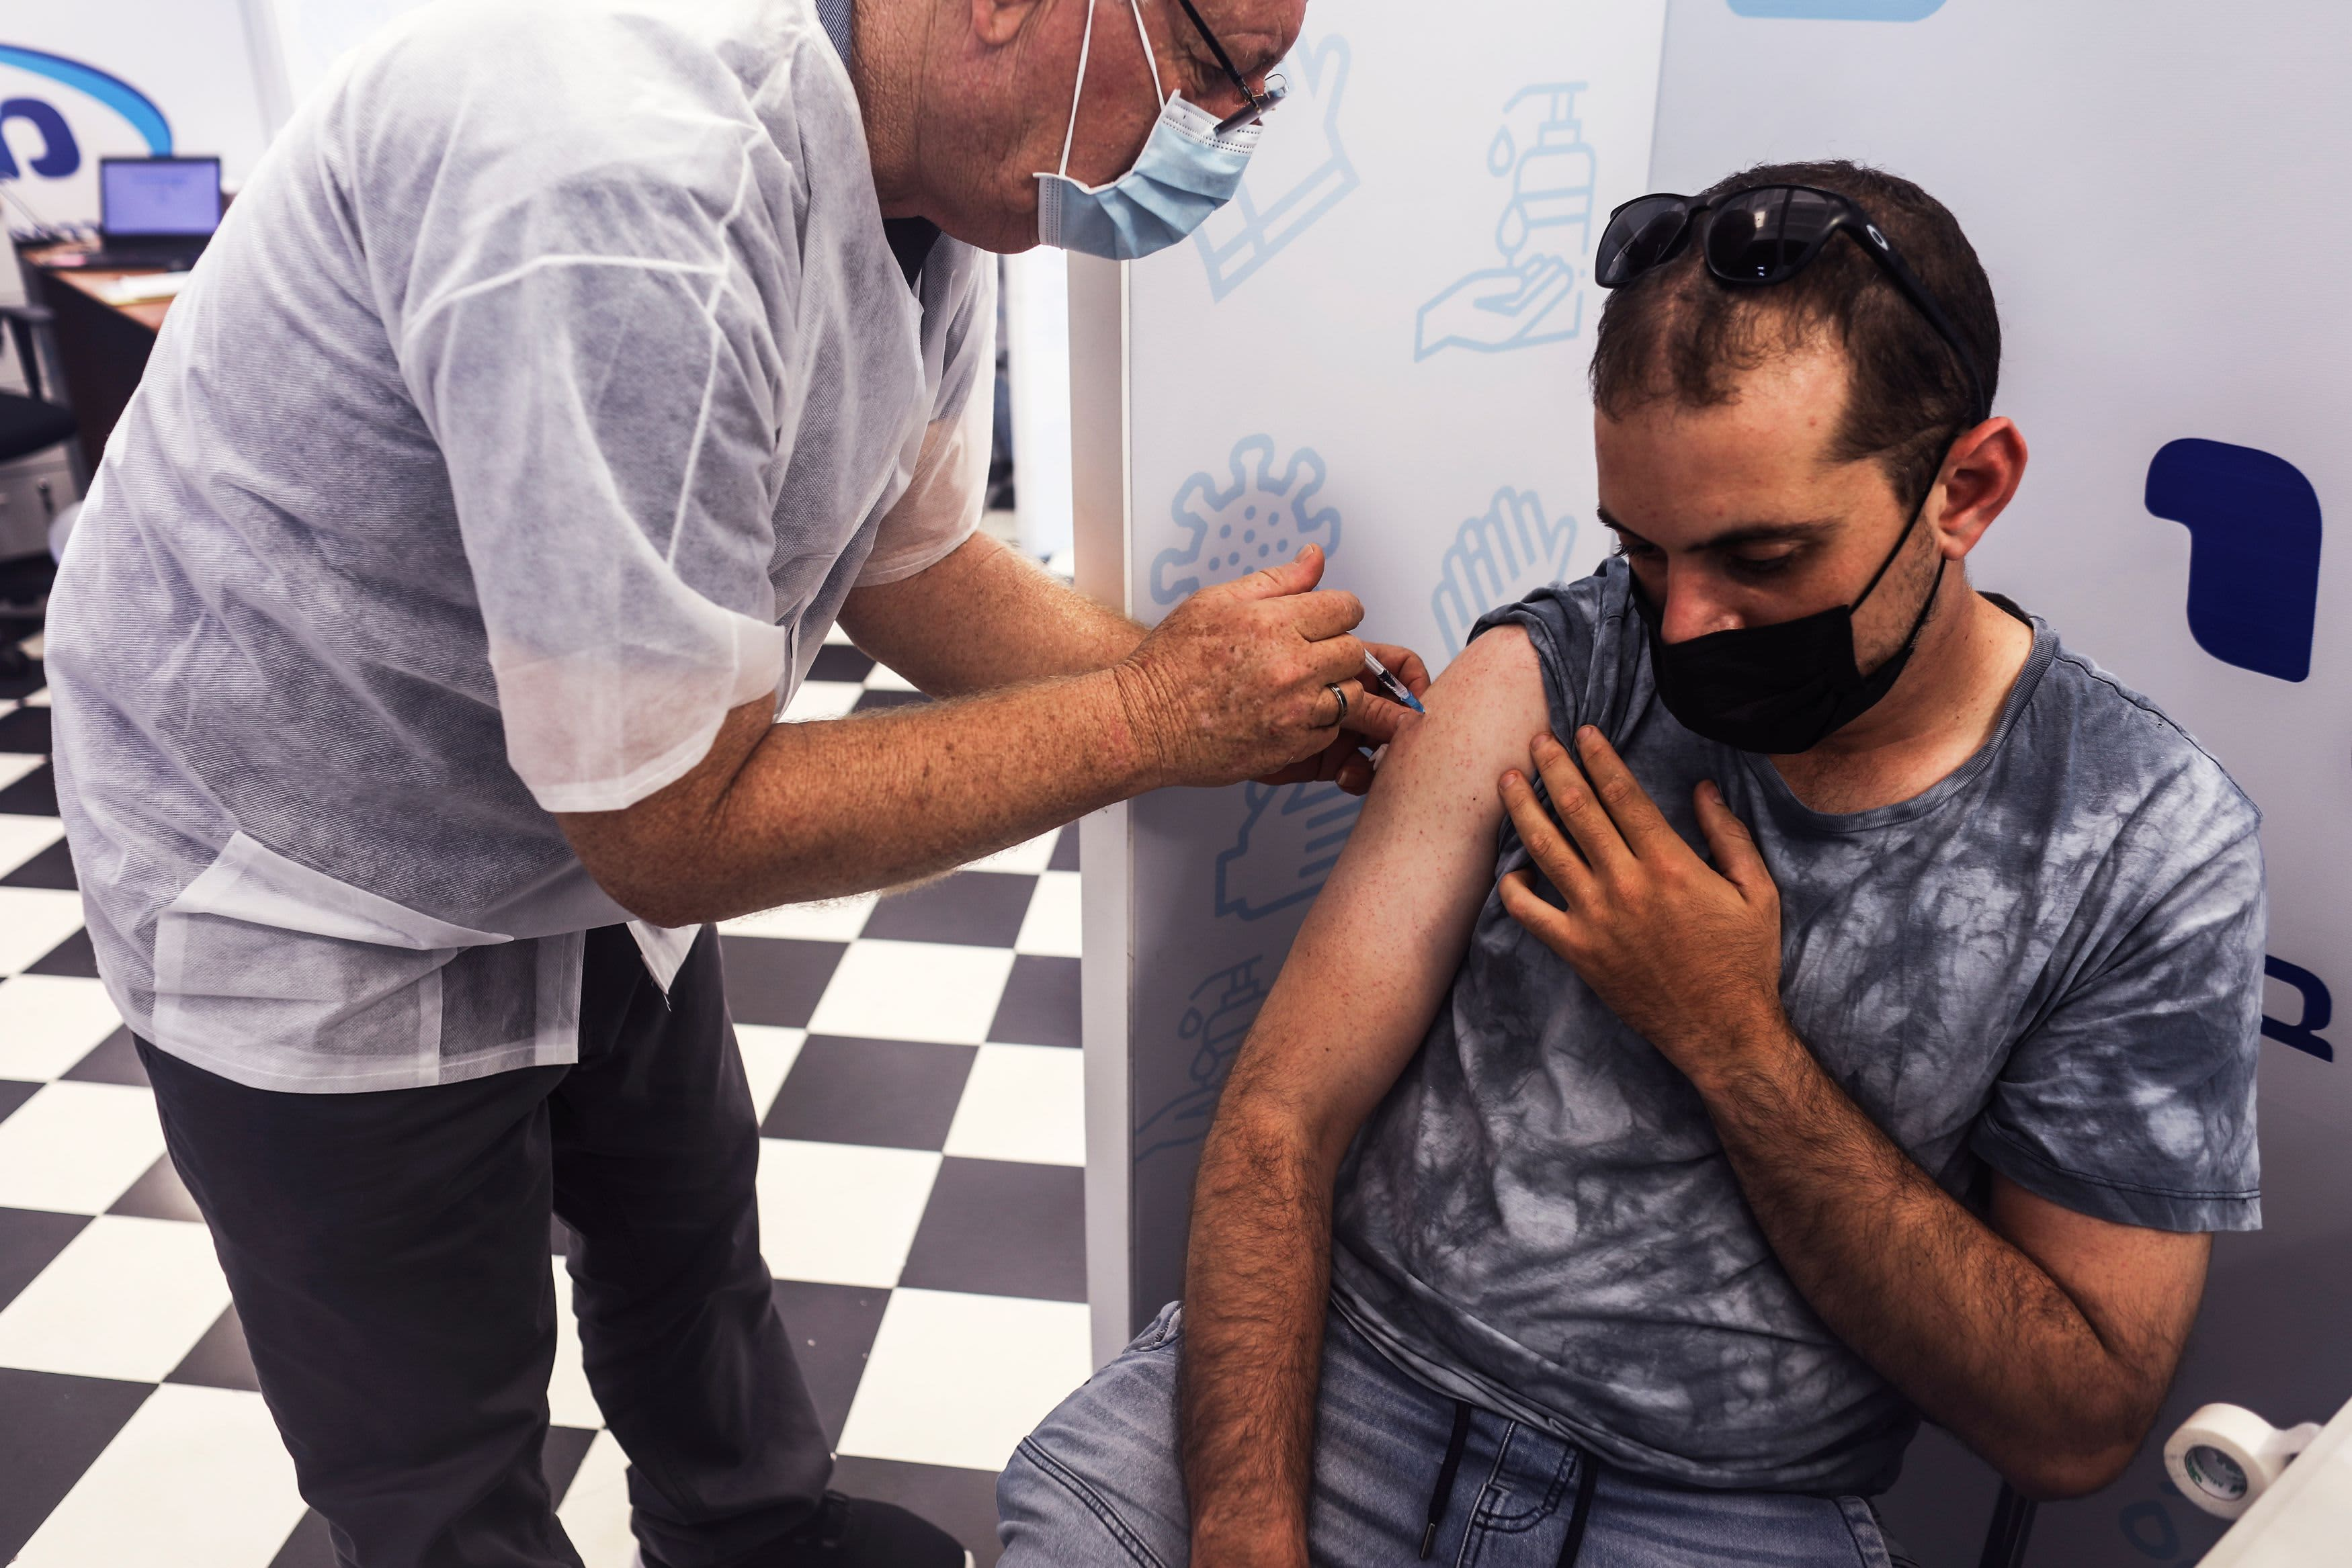 Israel doubles down on booster shots as daily Covid cases set new record